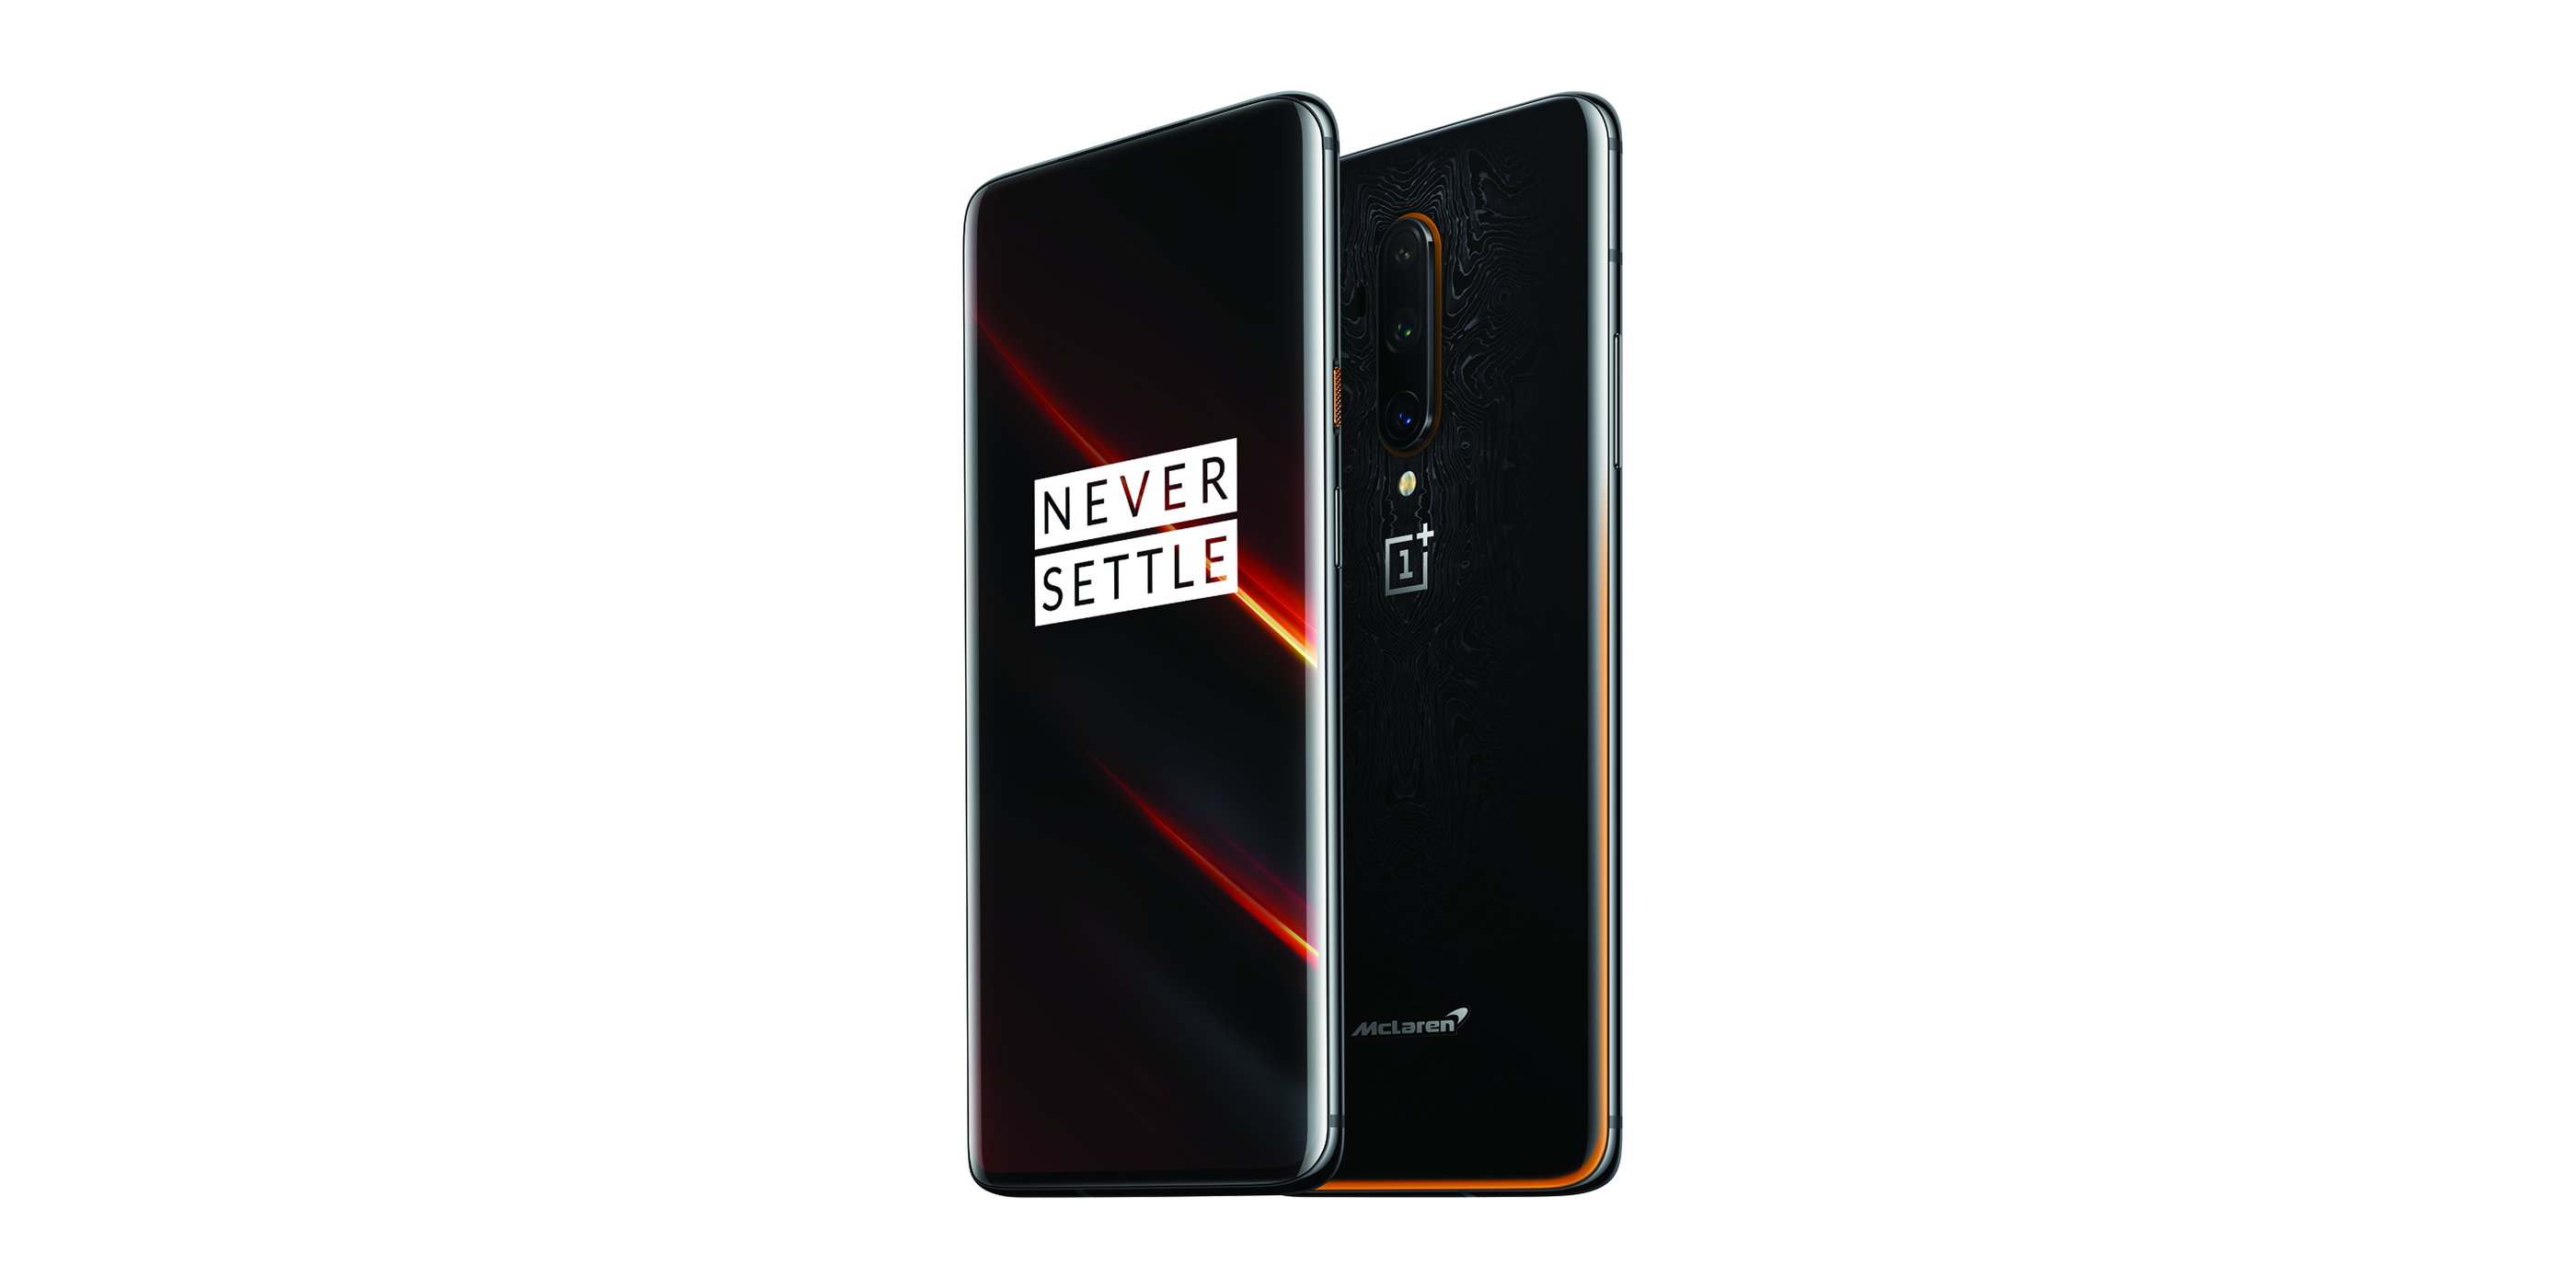 oneplus 7t pro 5g mclaren edition t-mobile